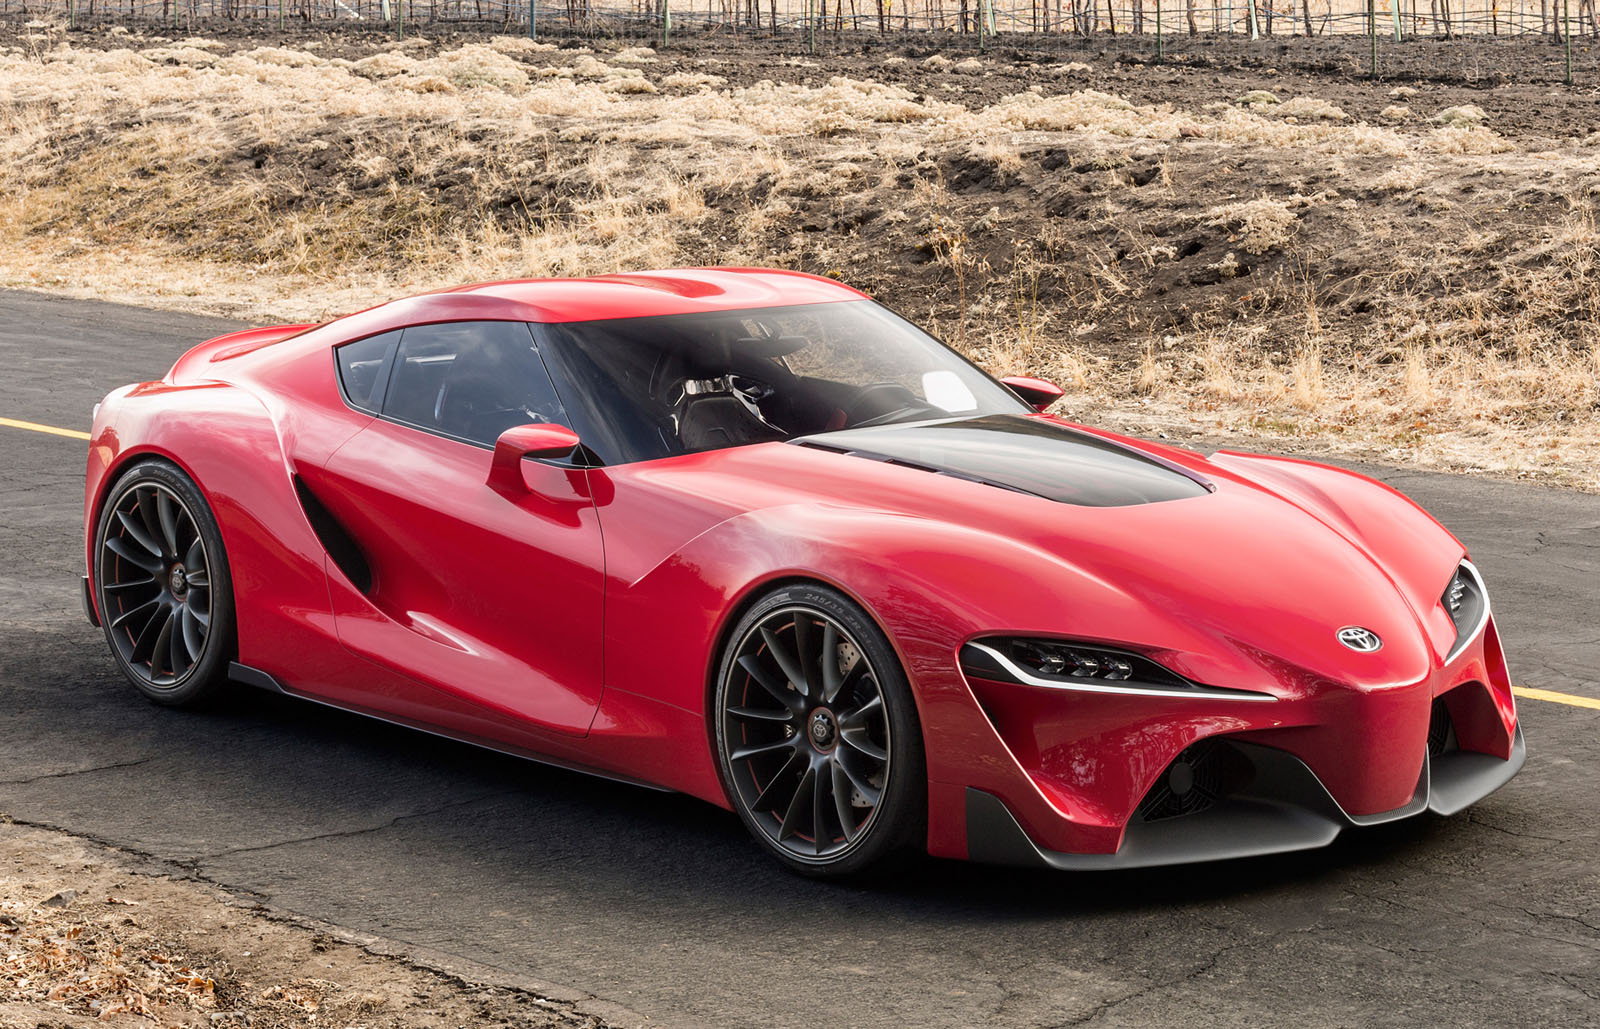 HQ Toyota FT-1 Concept Wallpapers | File 486.43Kb